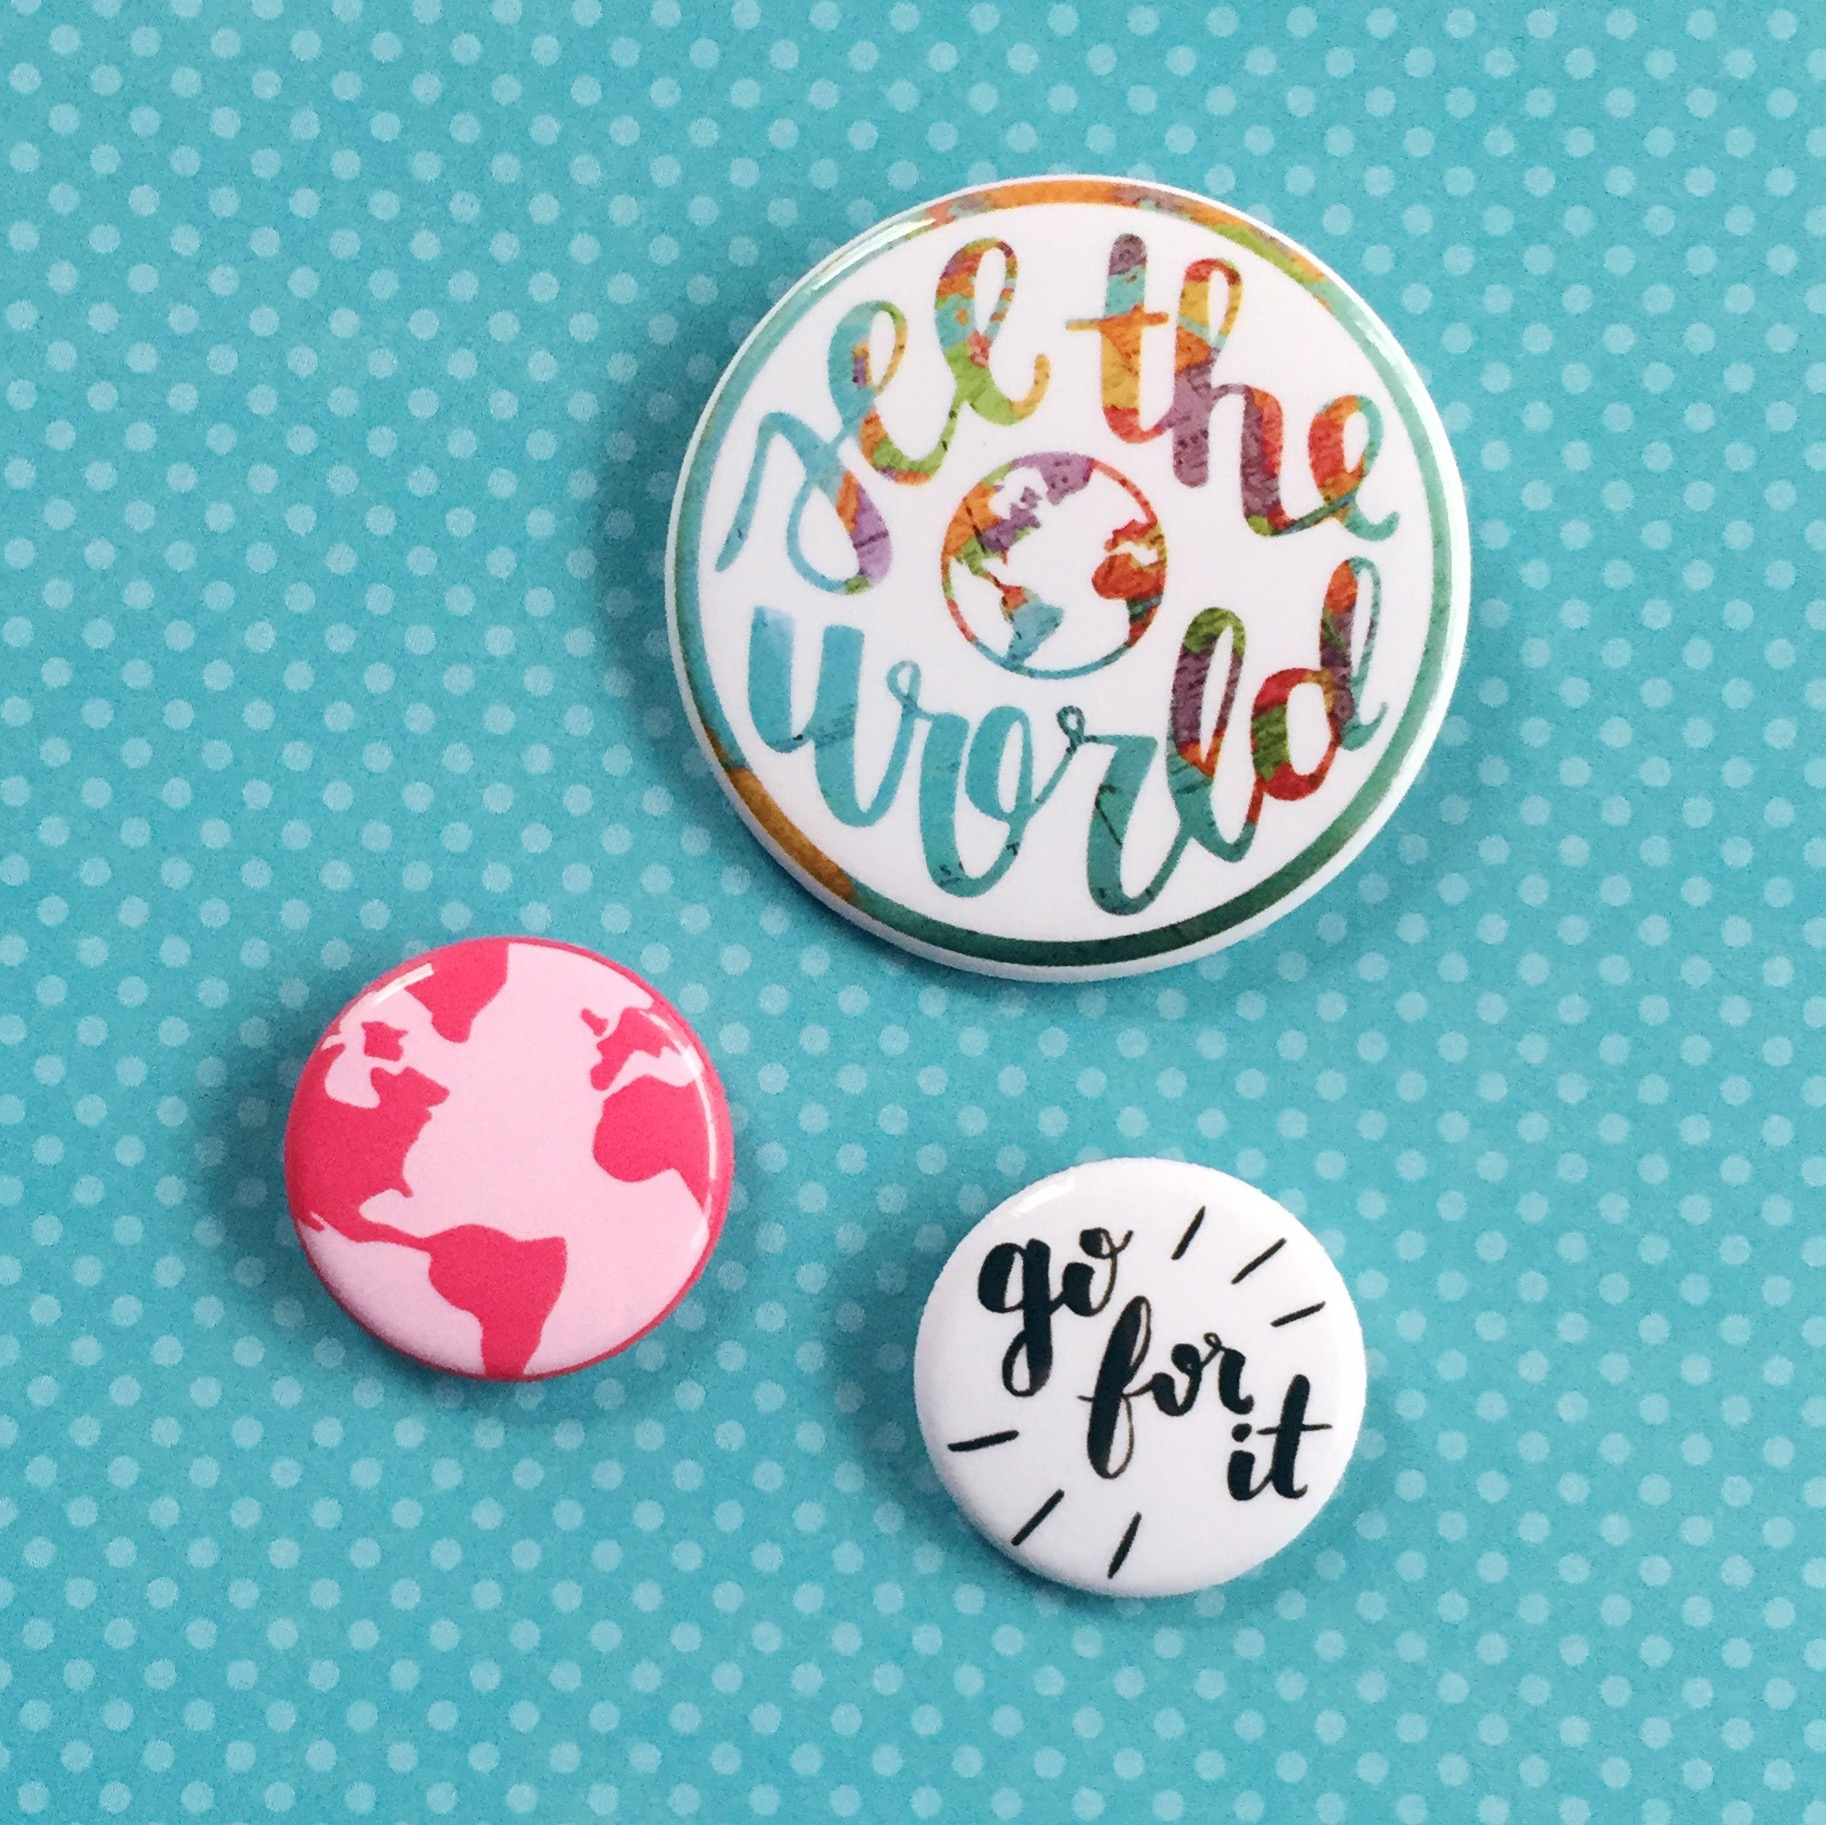 Travel buttons by Gladje Designs